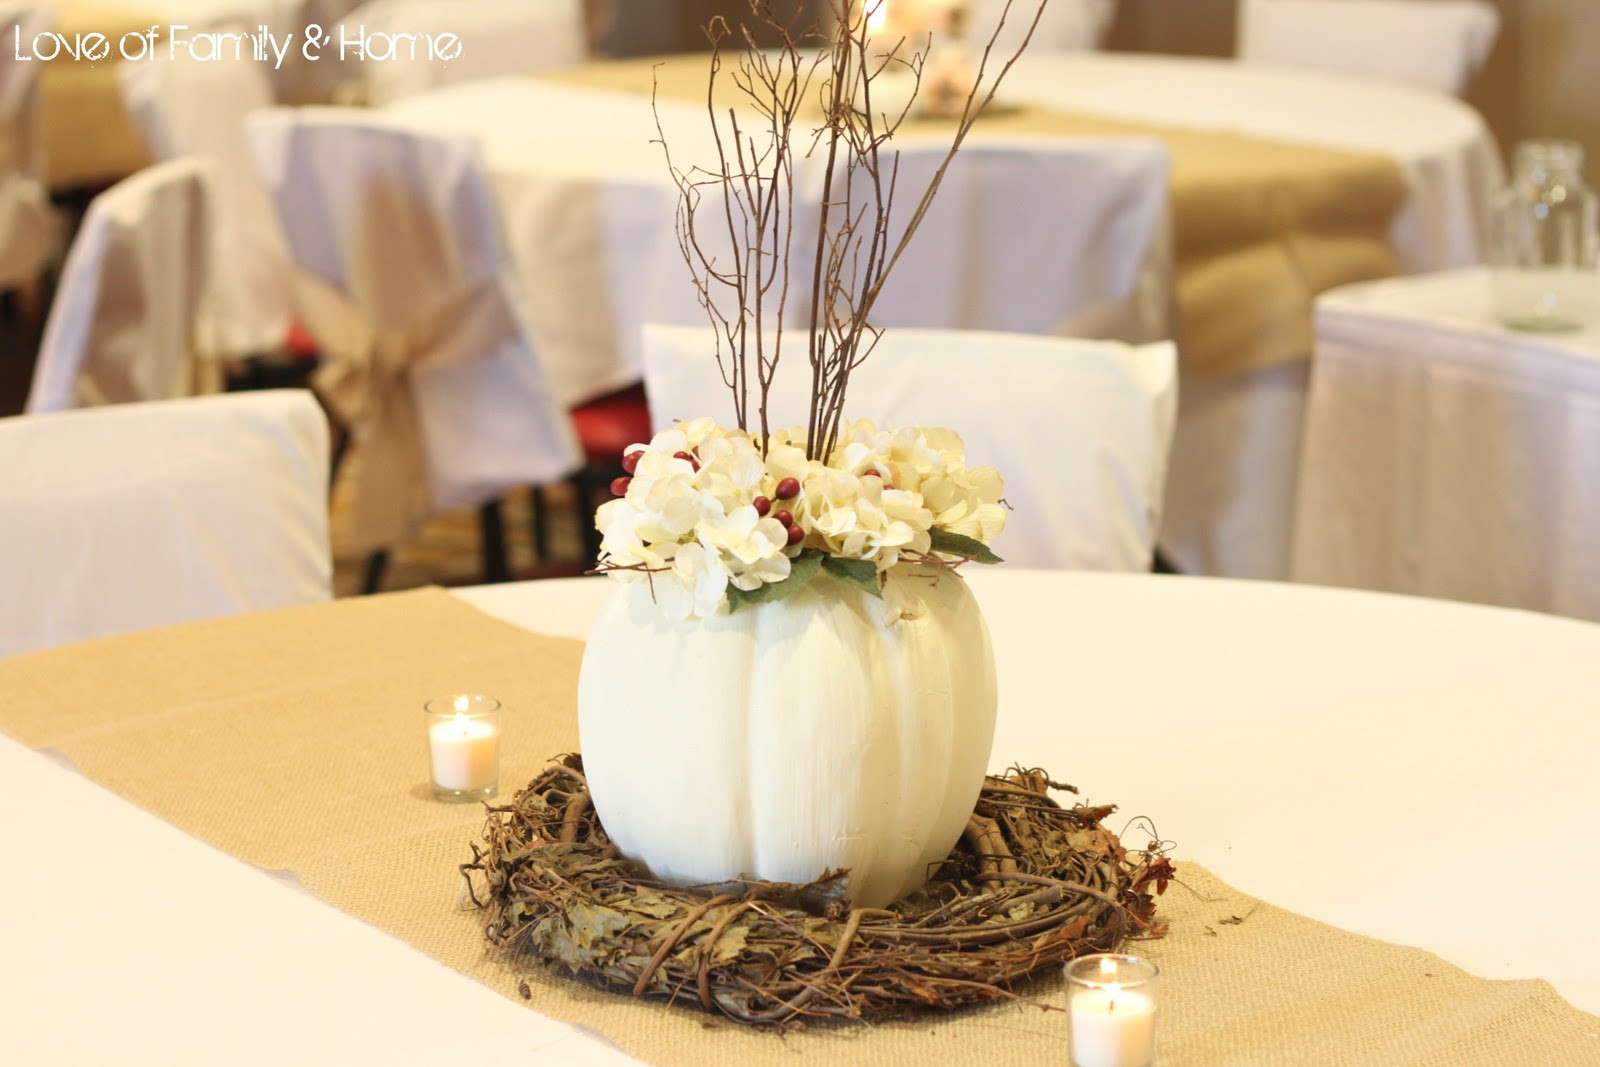 Best ideas about Fall Wedding Centerpieces DIY . Save or Pin DIY Rustic Chic Fall Wedding Reveal Love of Family Now.